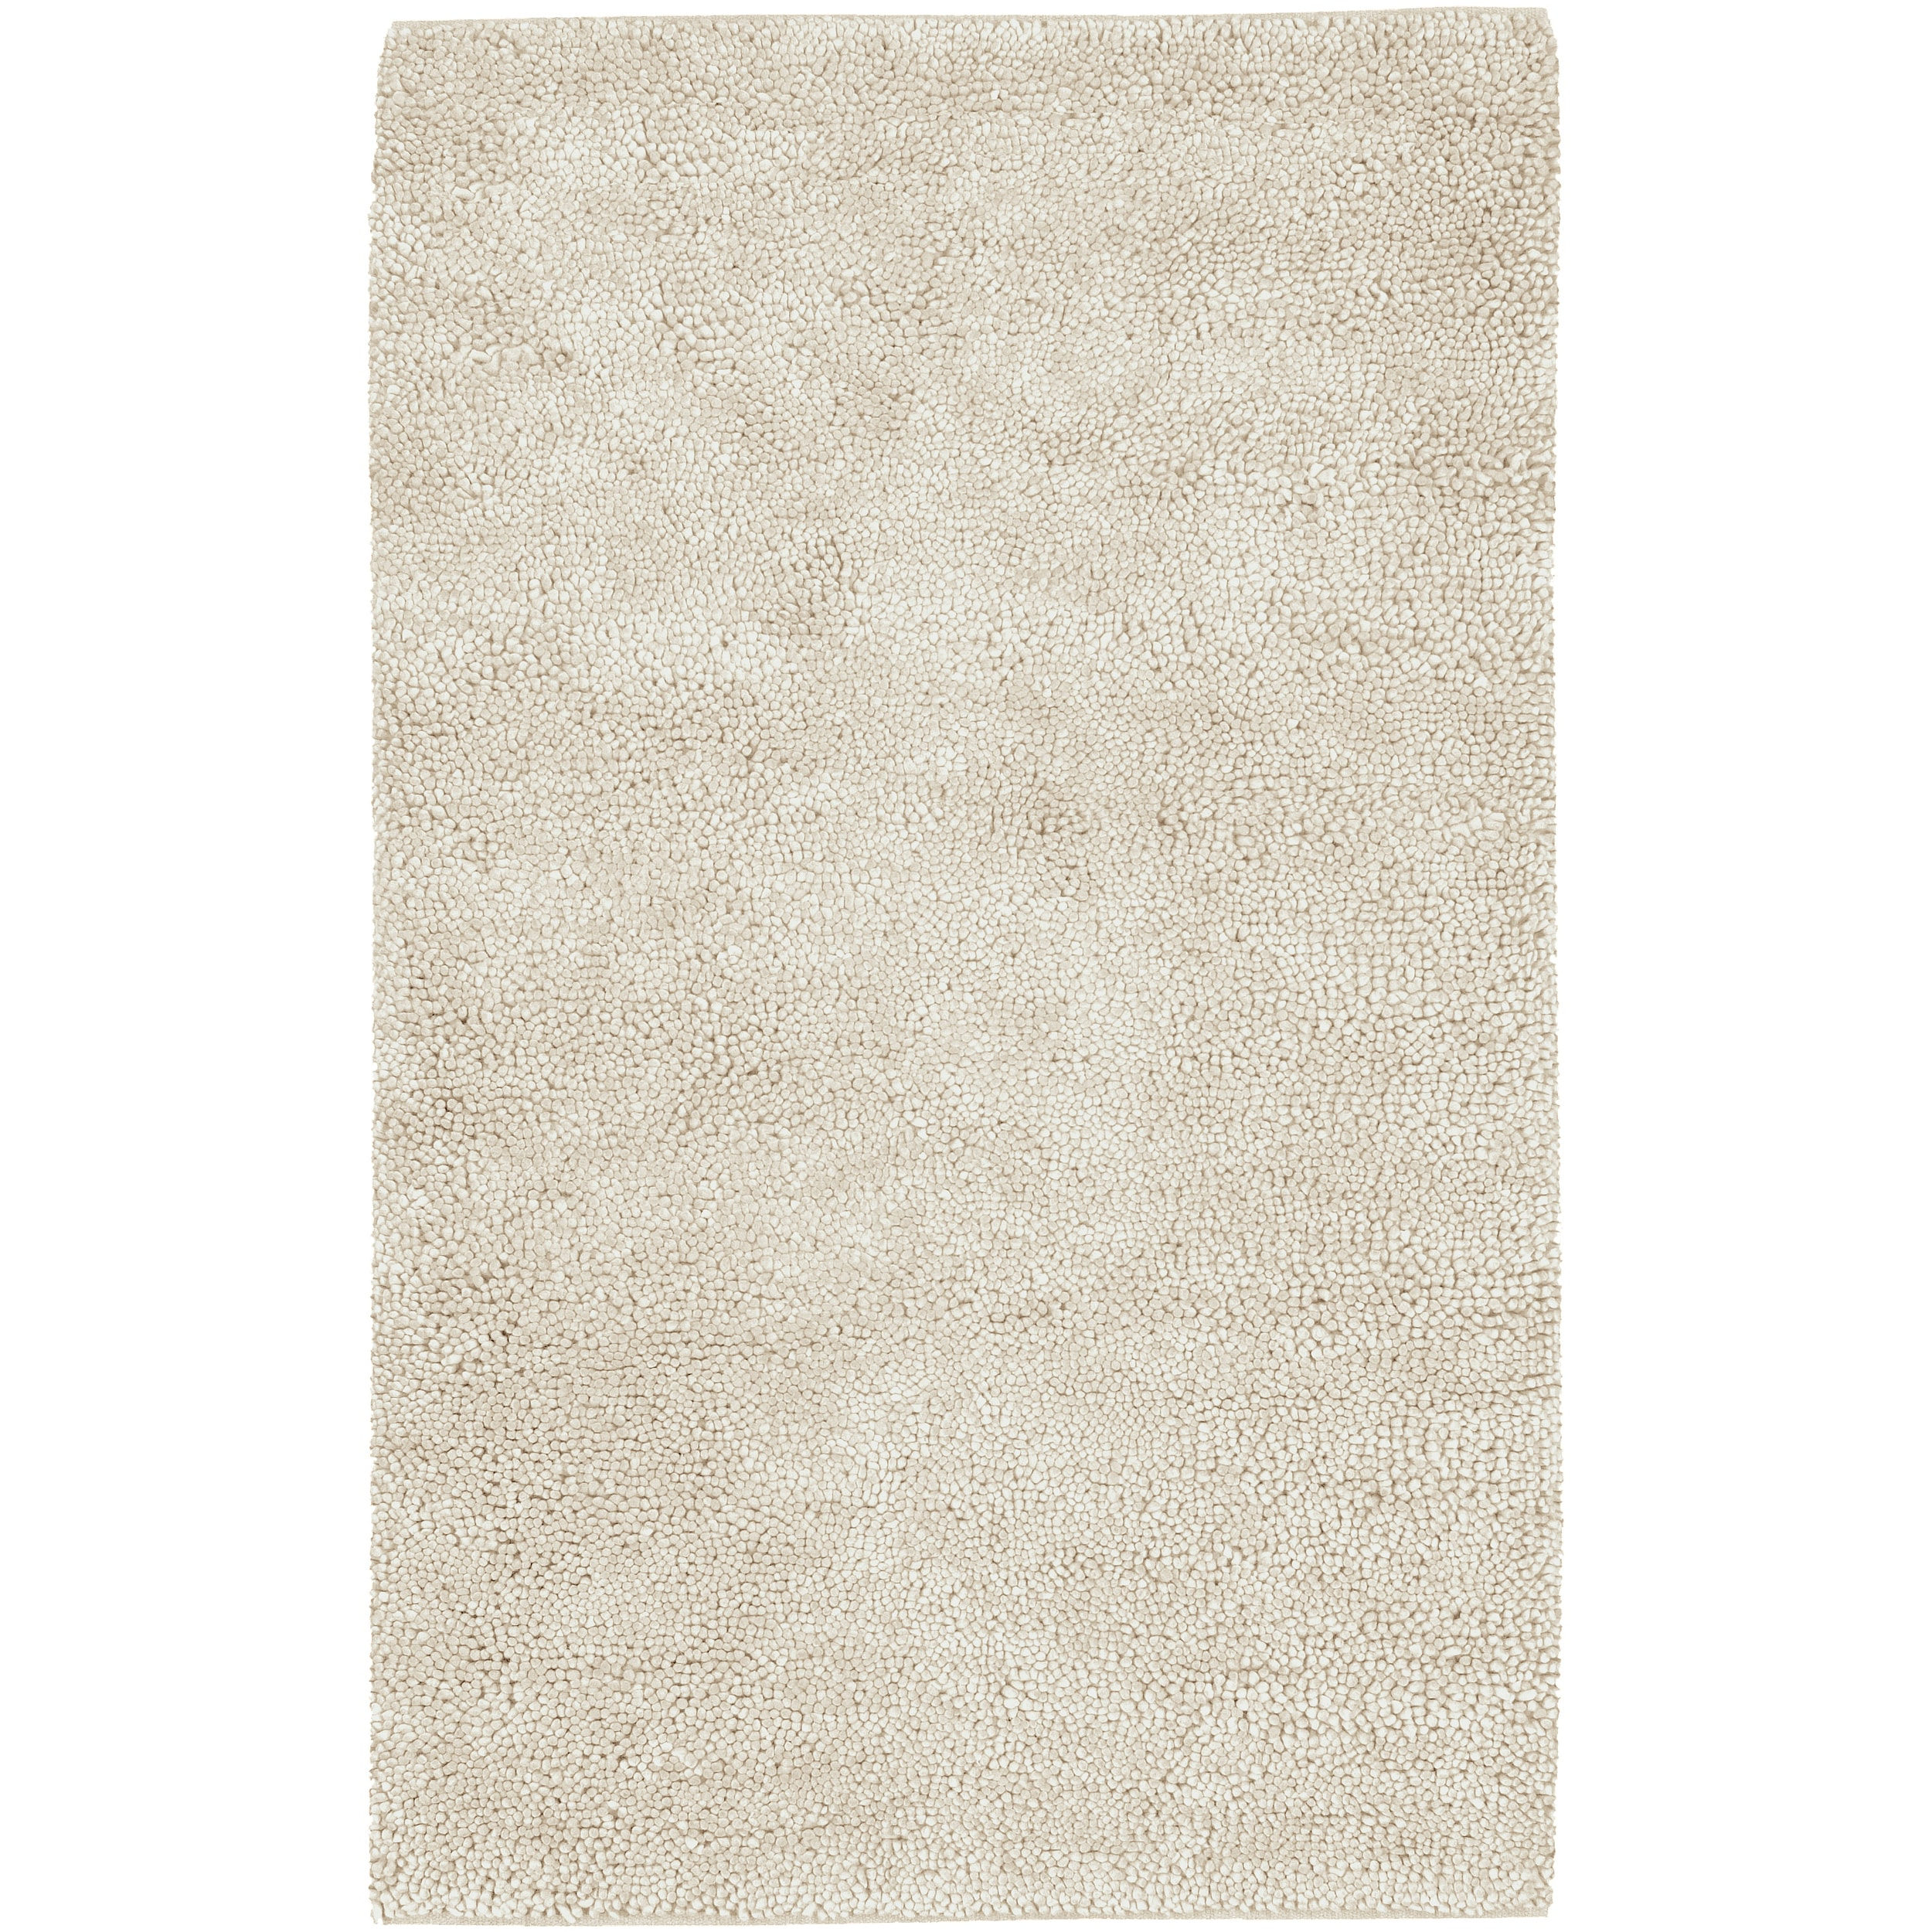 Hand-woven Delta Ivory Wool Rug (3'6 x 5'6)